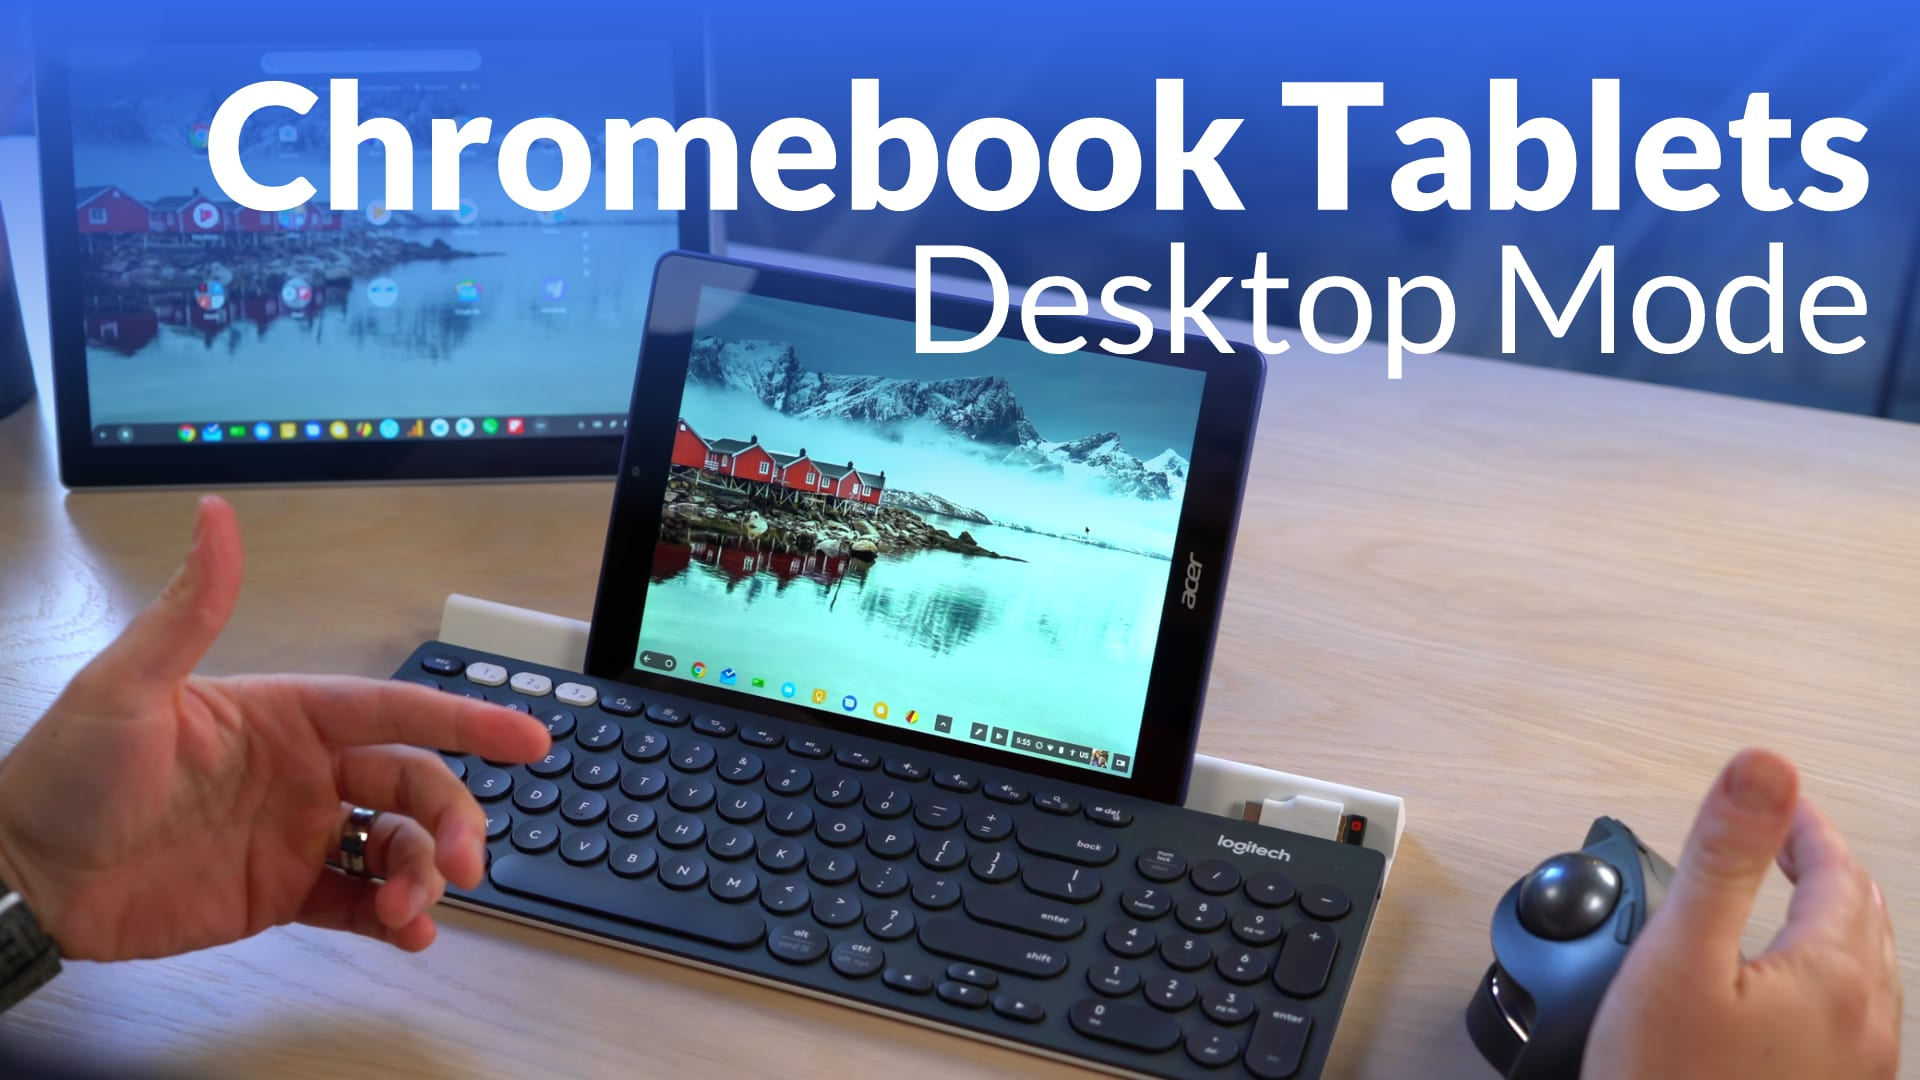 Chromebook Tablets Getting Proper Desktop Mode [VIDEO]